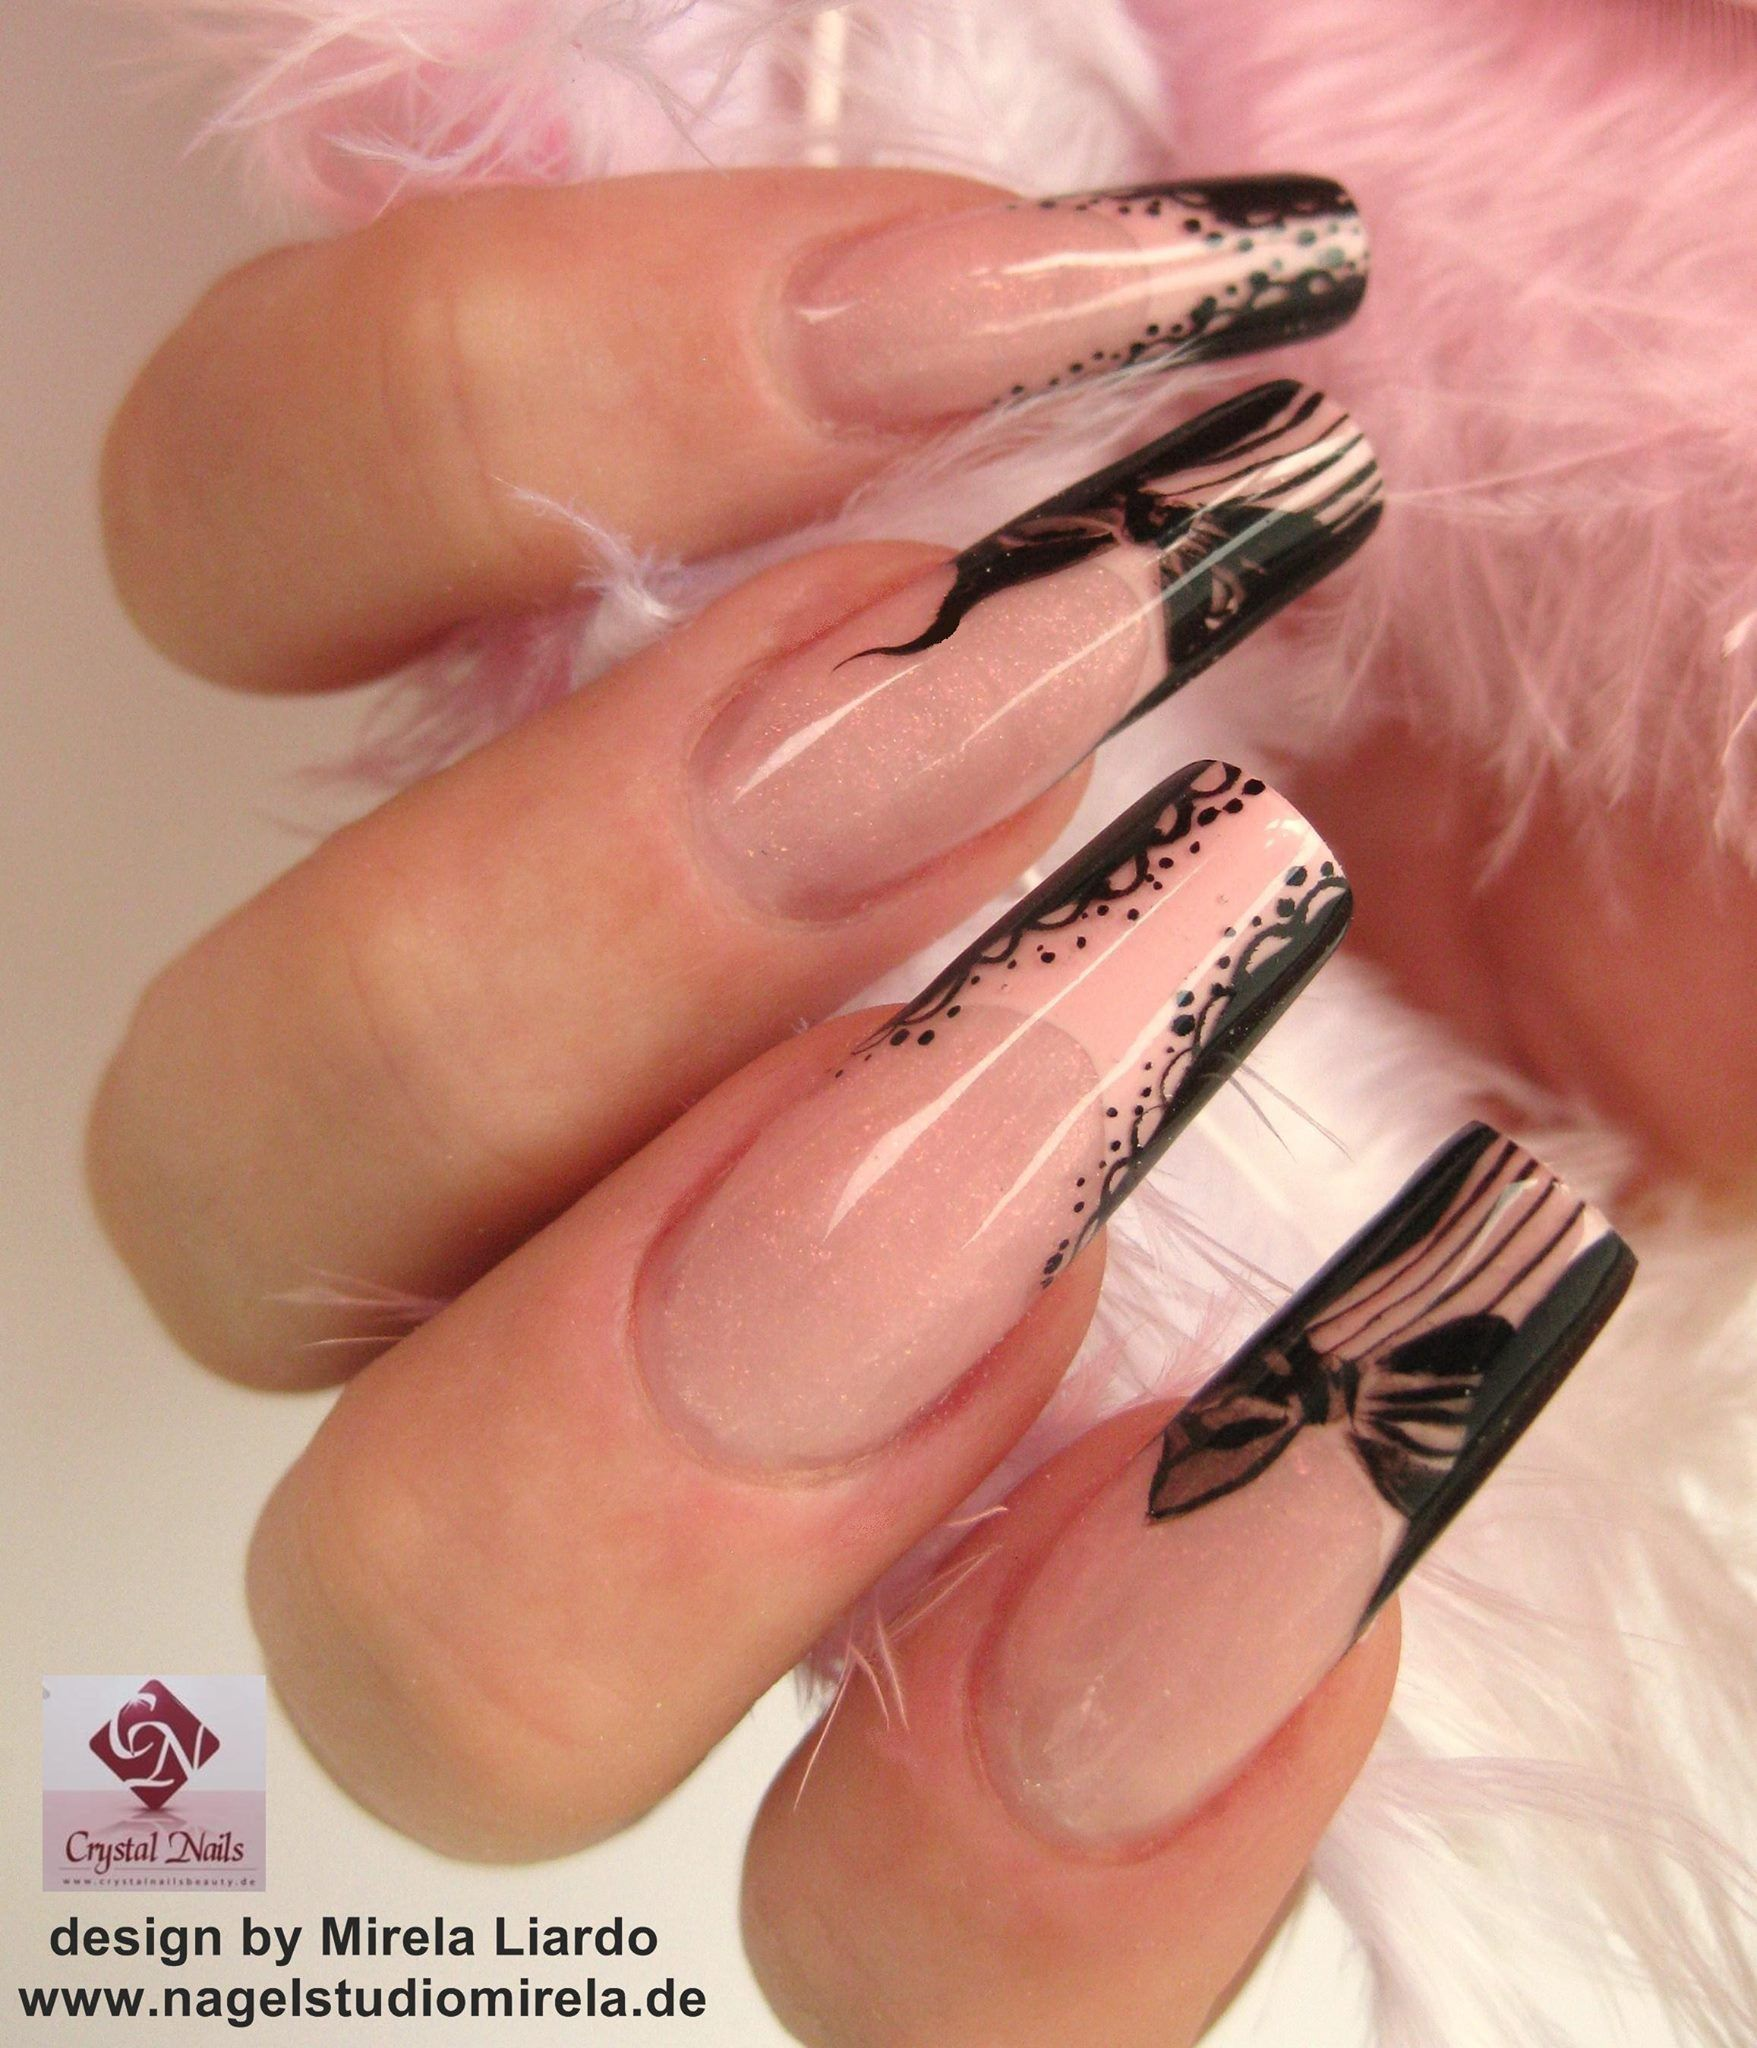 Nageldesign Spitze Ngel. Best Nageldesign With Nageldesign Spitze ...